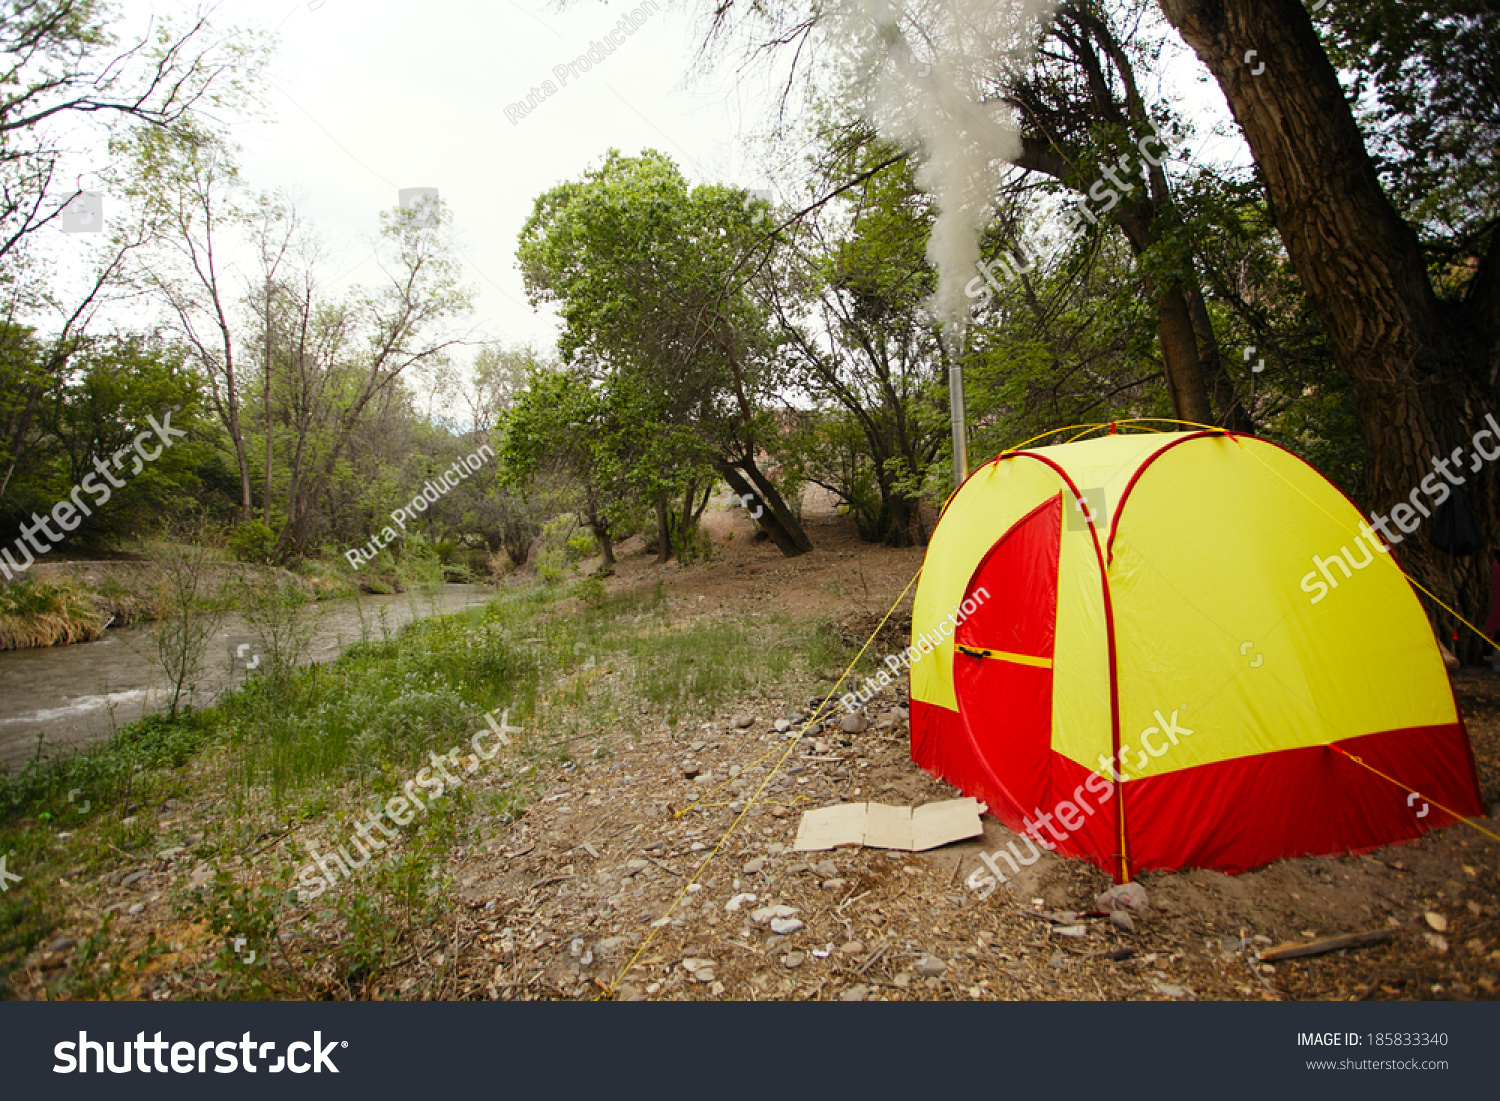 C&ing tent sauna near river & Camping Tent Sauna Near River Stock Photo 185833340 - Shutterstock